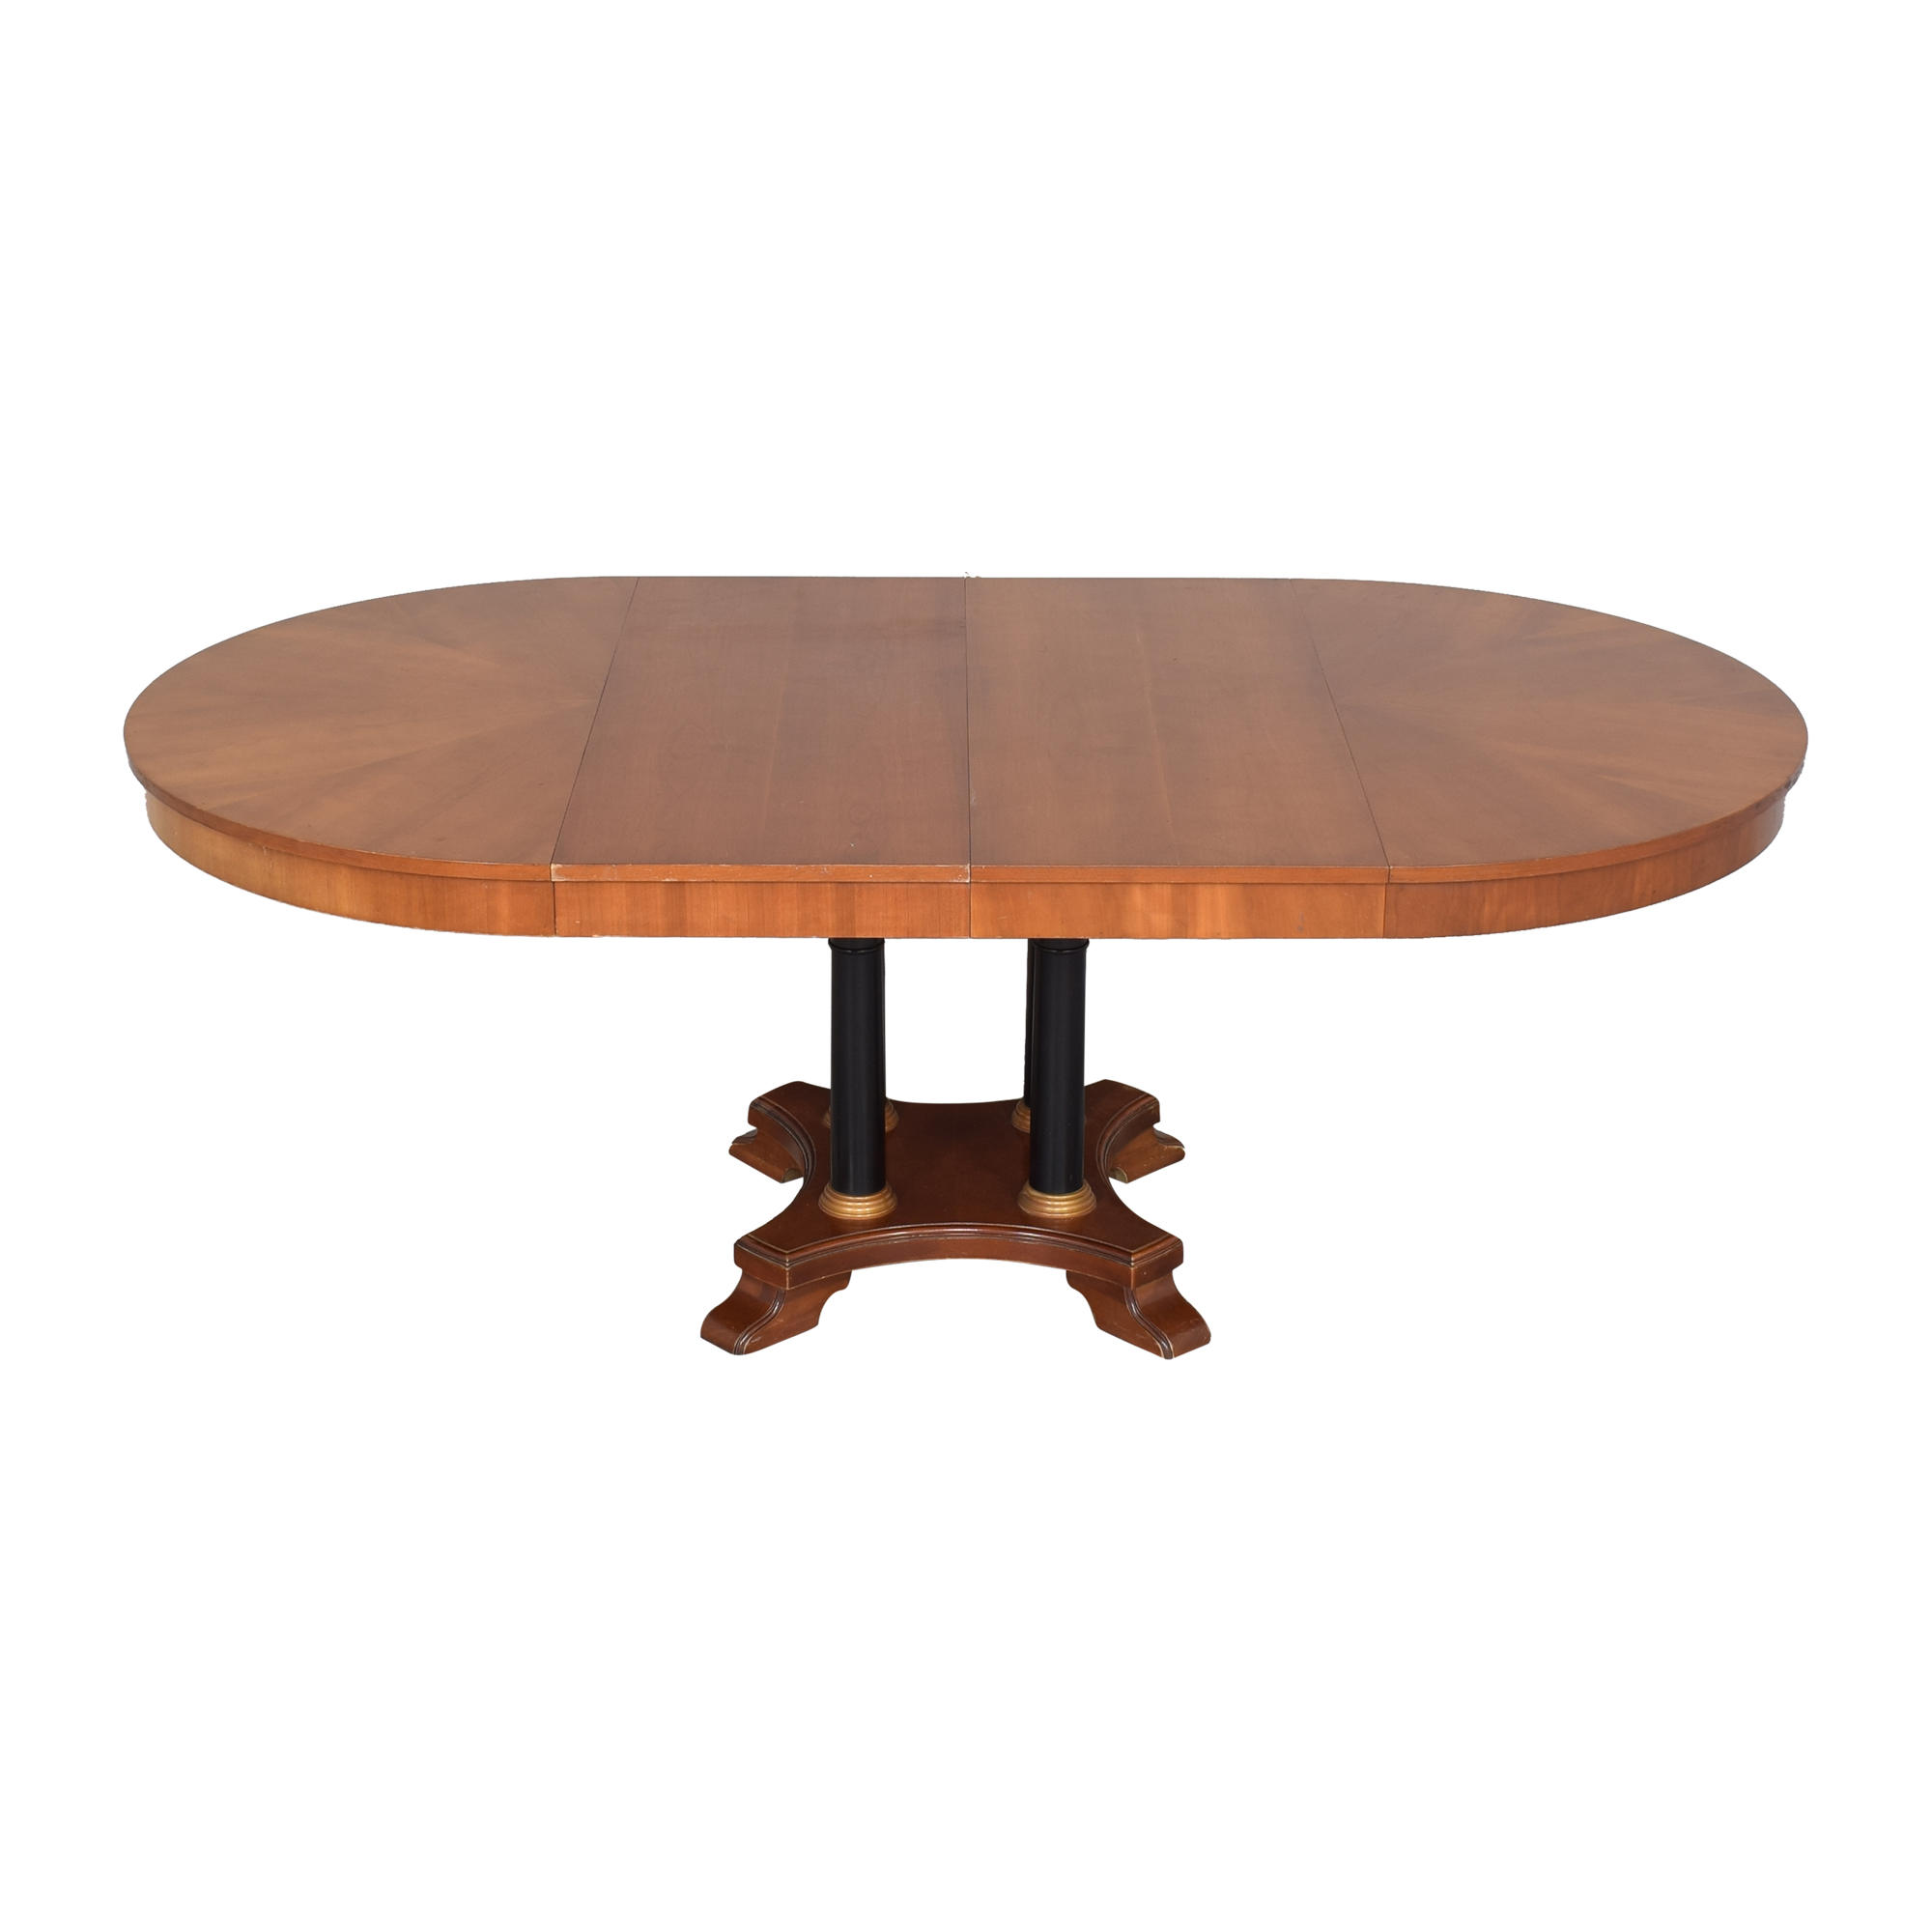 Ethan Allen Ethan Allen Medallion Collection Round Extendable Dining Table dimensions